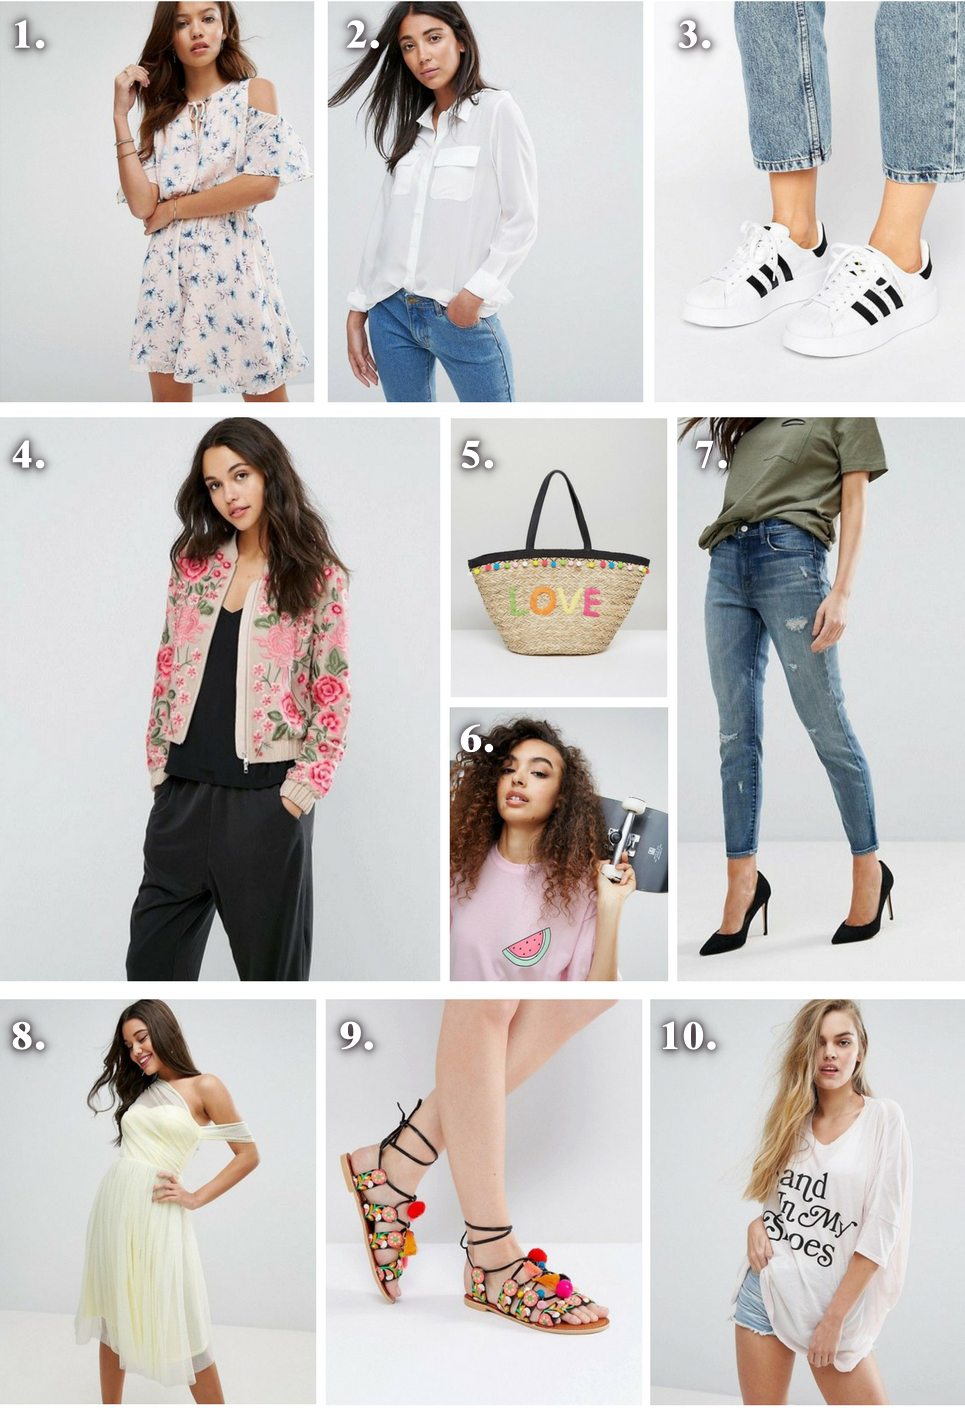 ASOS Best Buys Summer Sale 2017